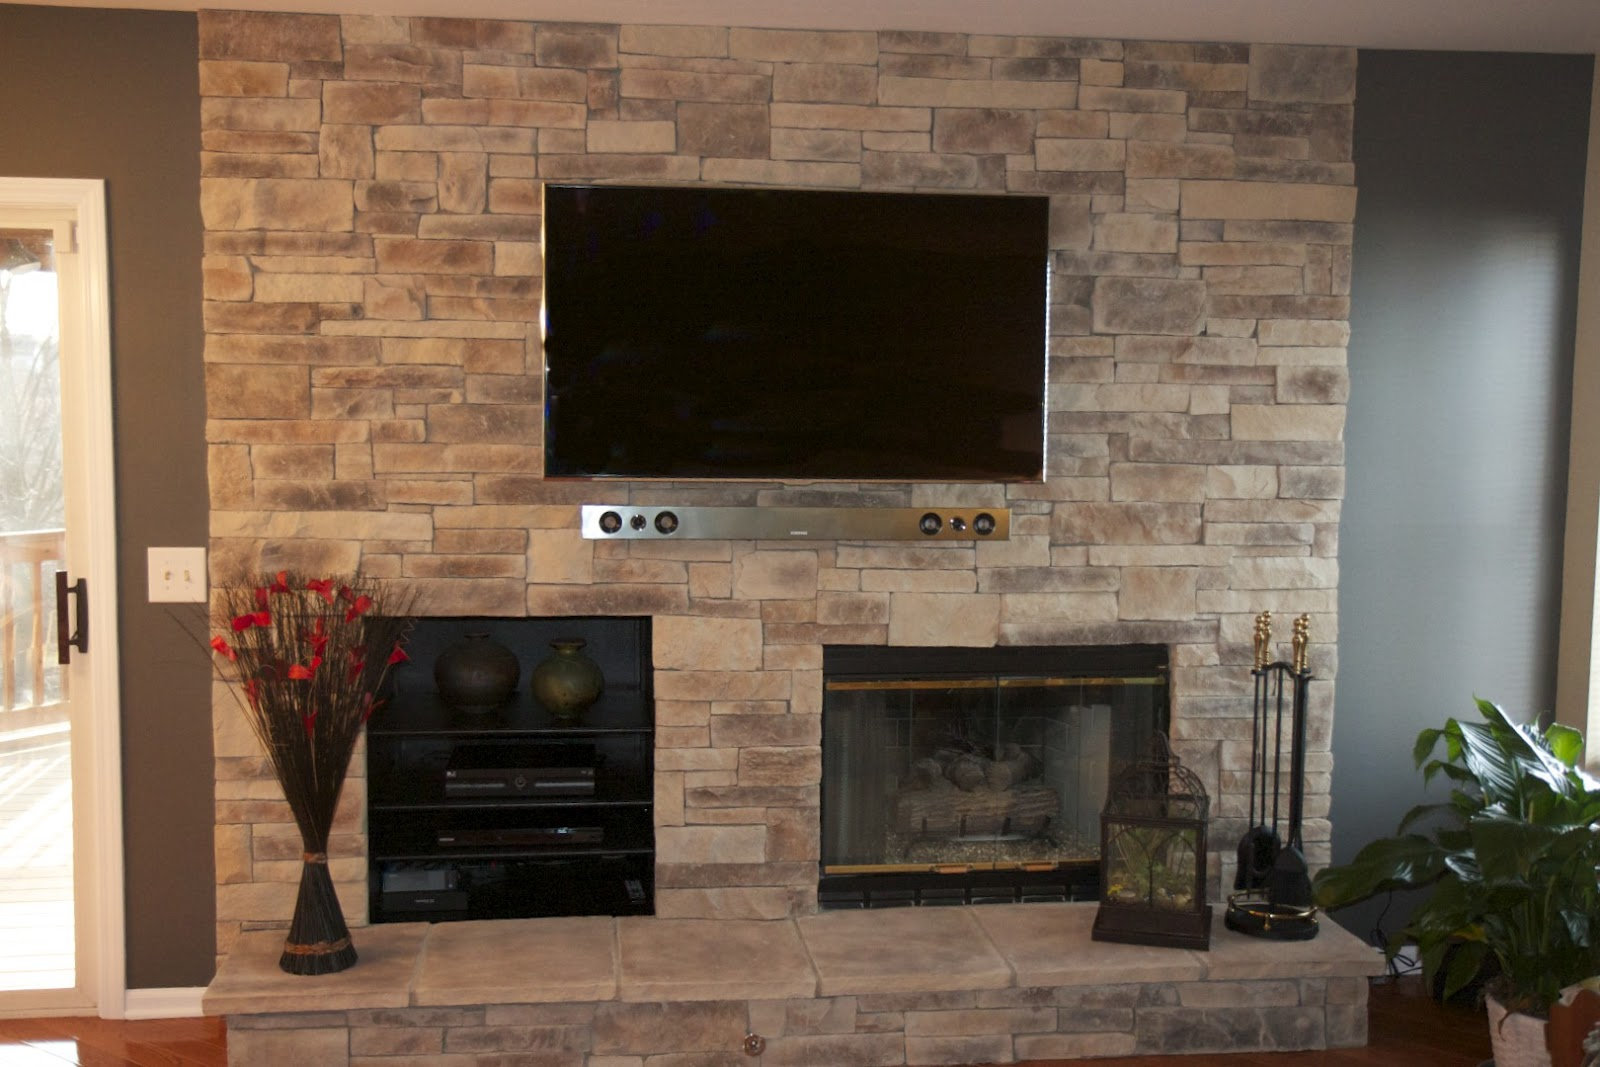 Fireplace Stone Ideas Prepossessing Of Fireplace with Stone Wall Living Room Design Images